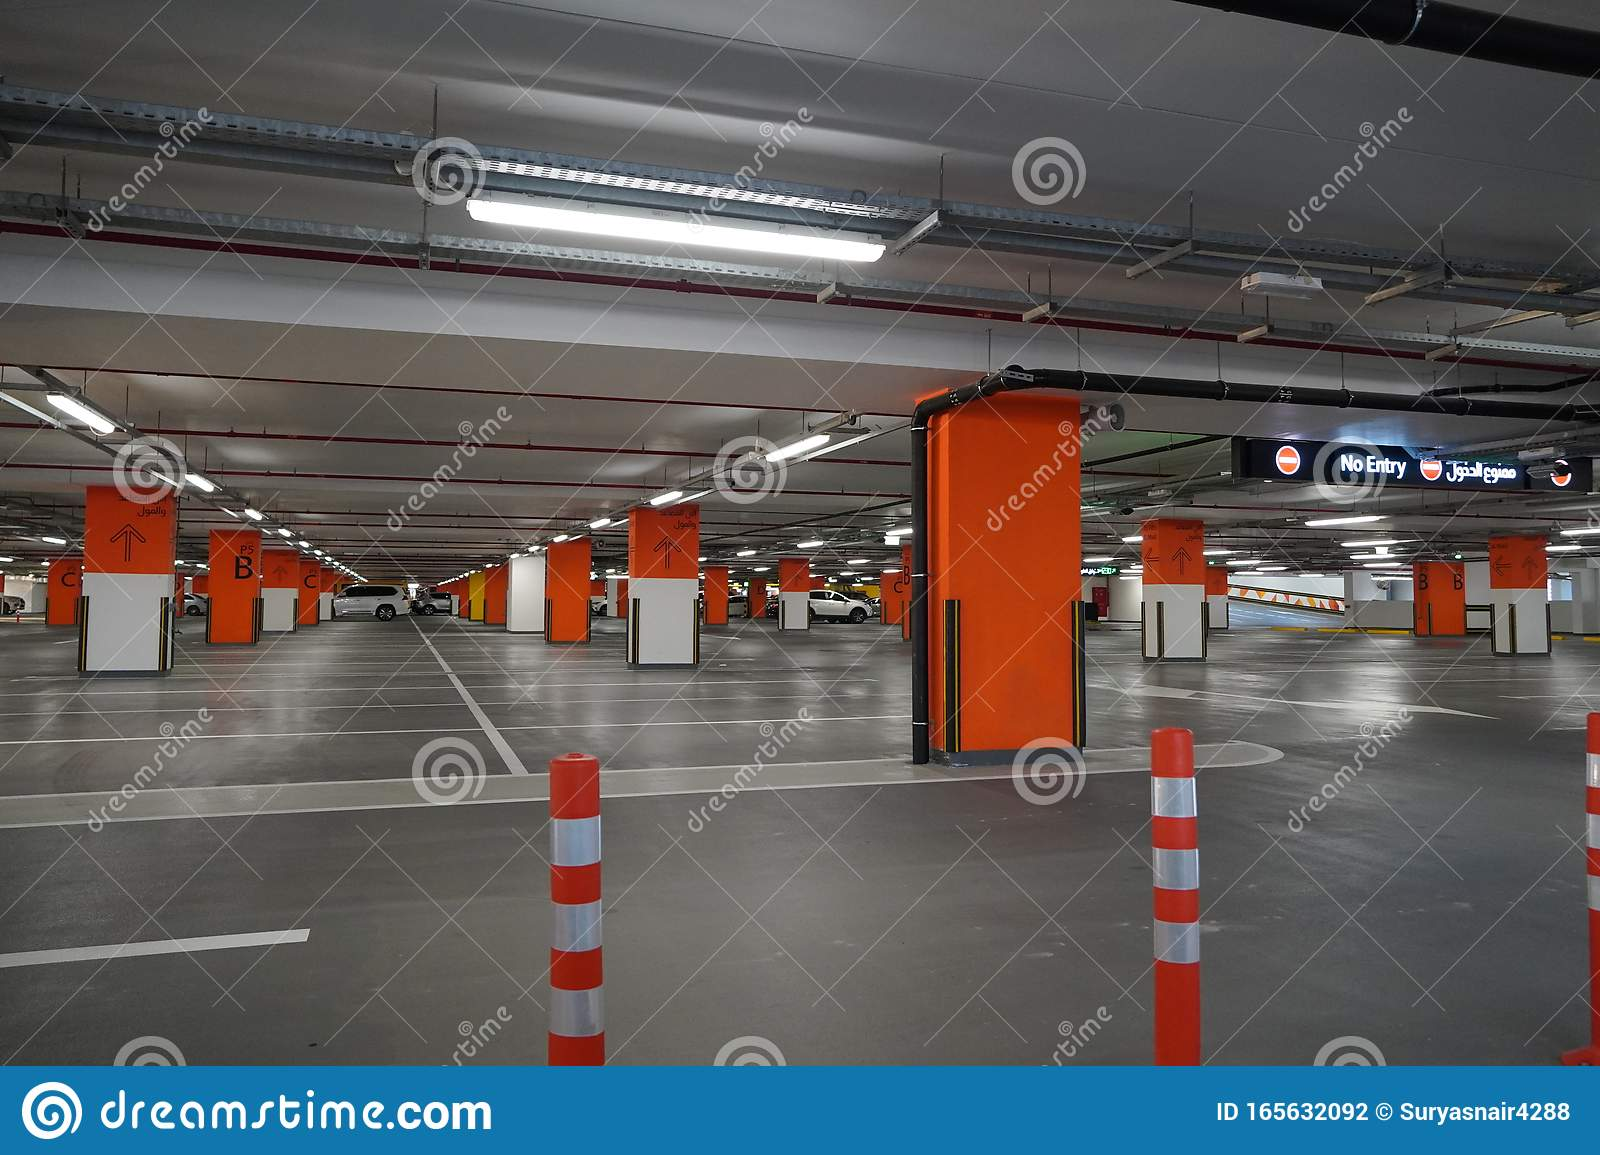 Dubai Uae December 2019 Underground Parking Which Is Almost Empty Empty Garage In Basement Of Office Building Reinforced Editorial Photography Image Of Basement Floor 165632092